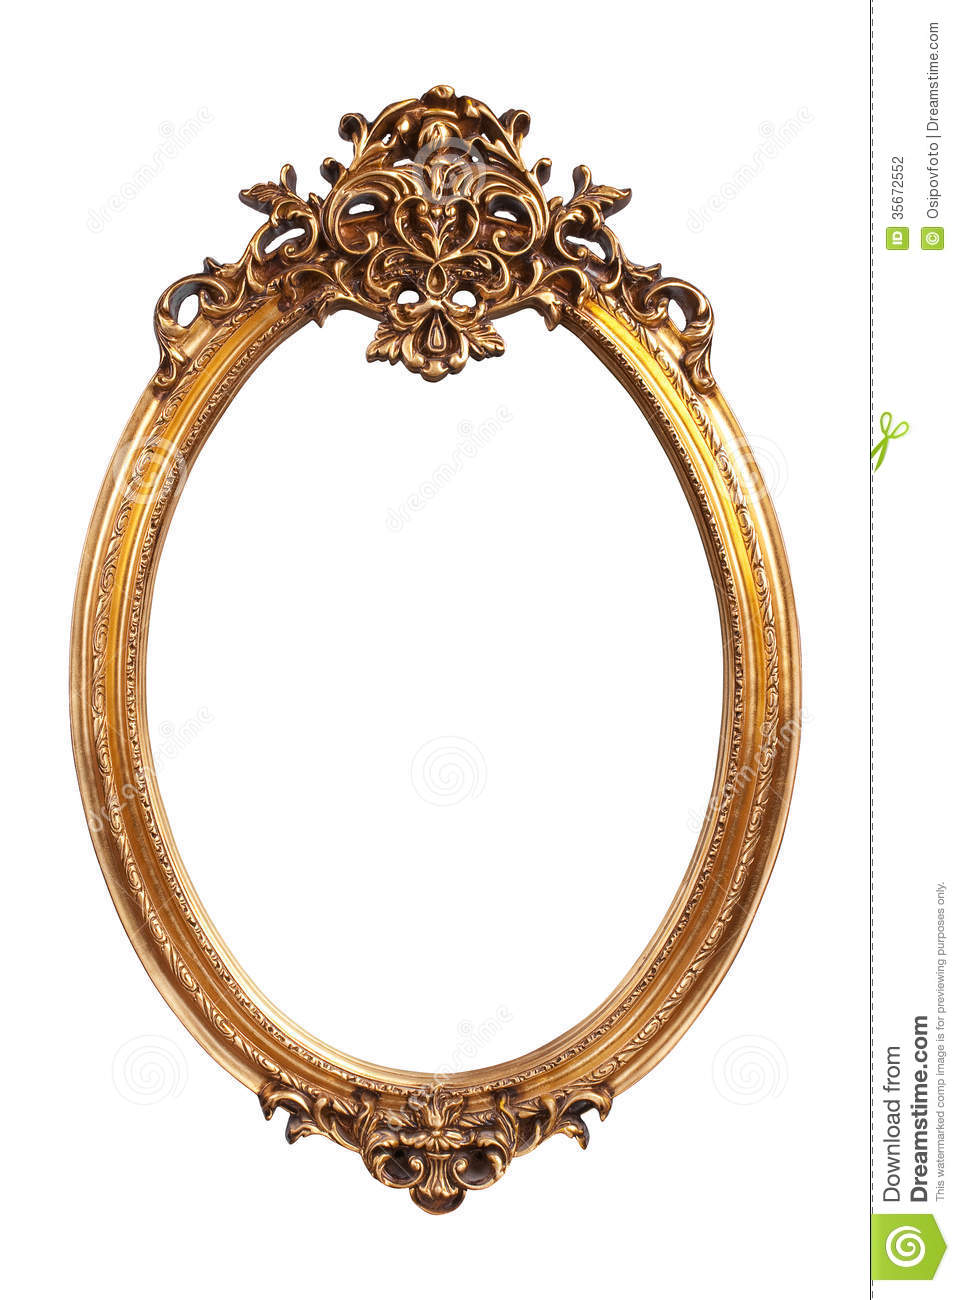 gallery images and information vintage gold oval frame